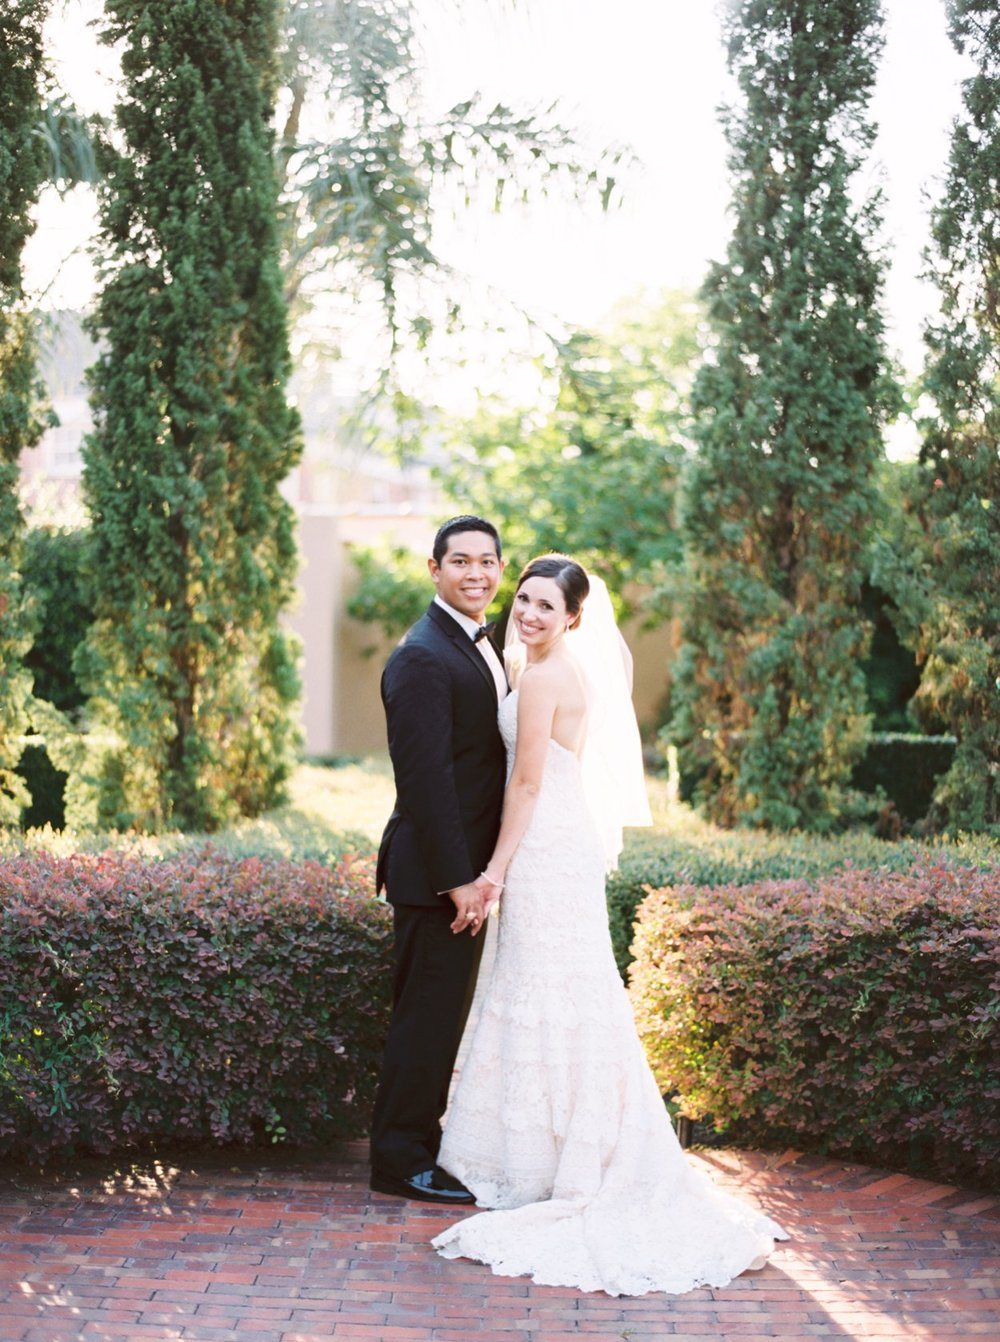 7f40f-18houston2bwedding2bphotographer.jpeg